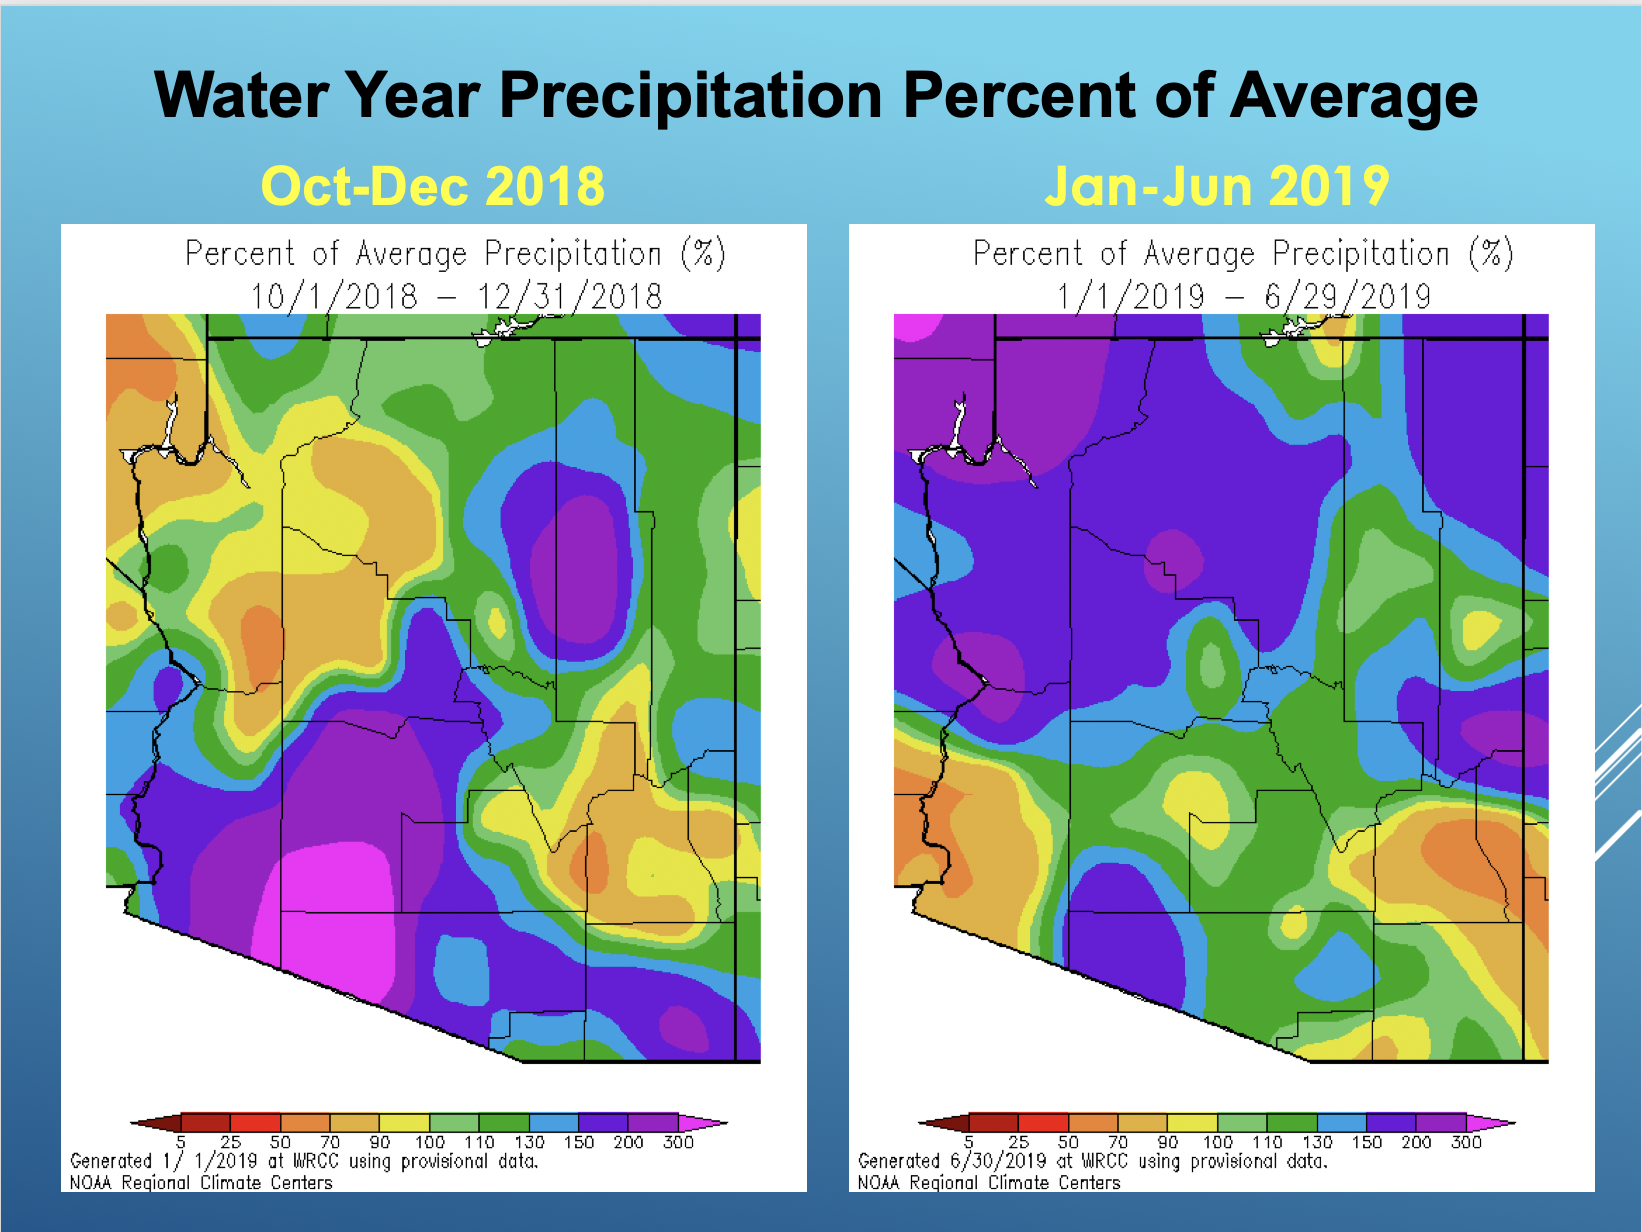 Water Year Precipitation Percent of Average